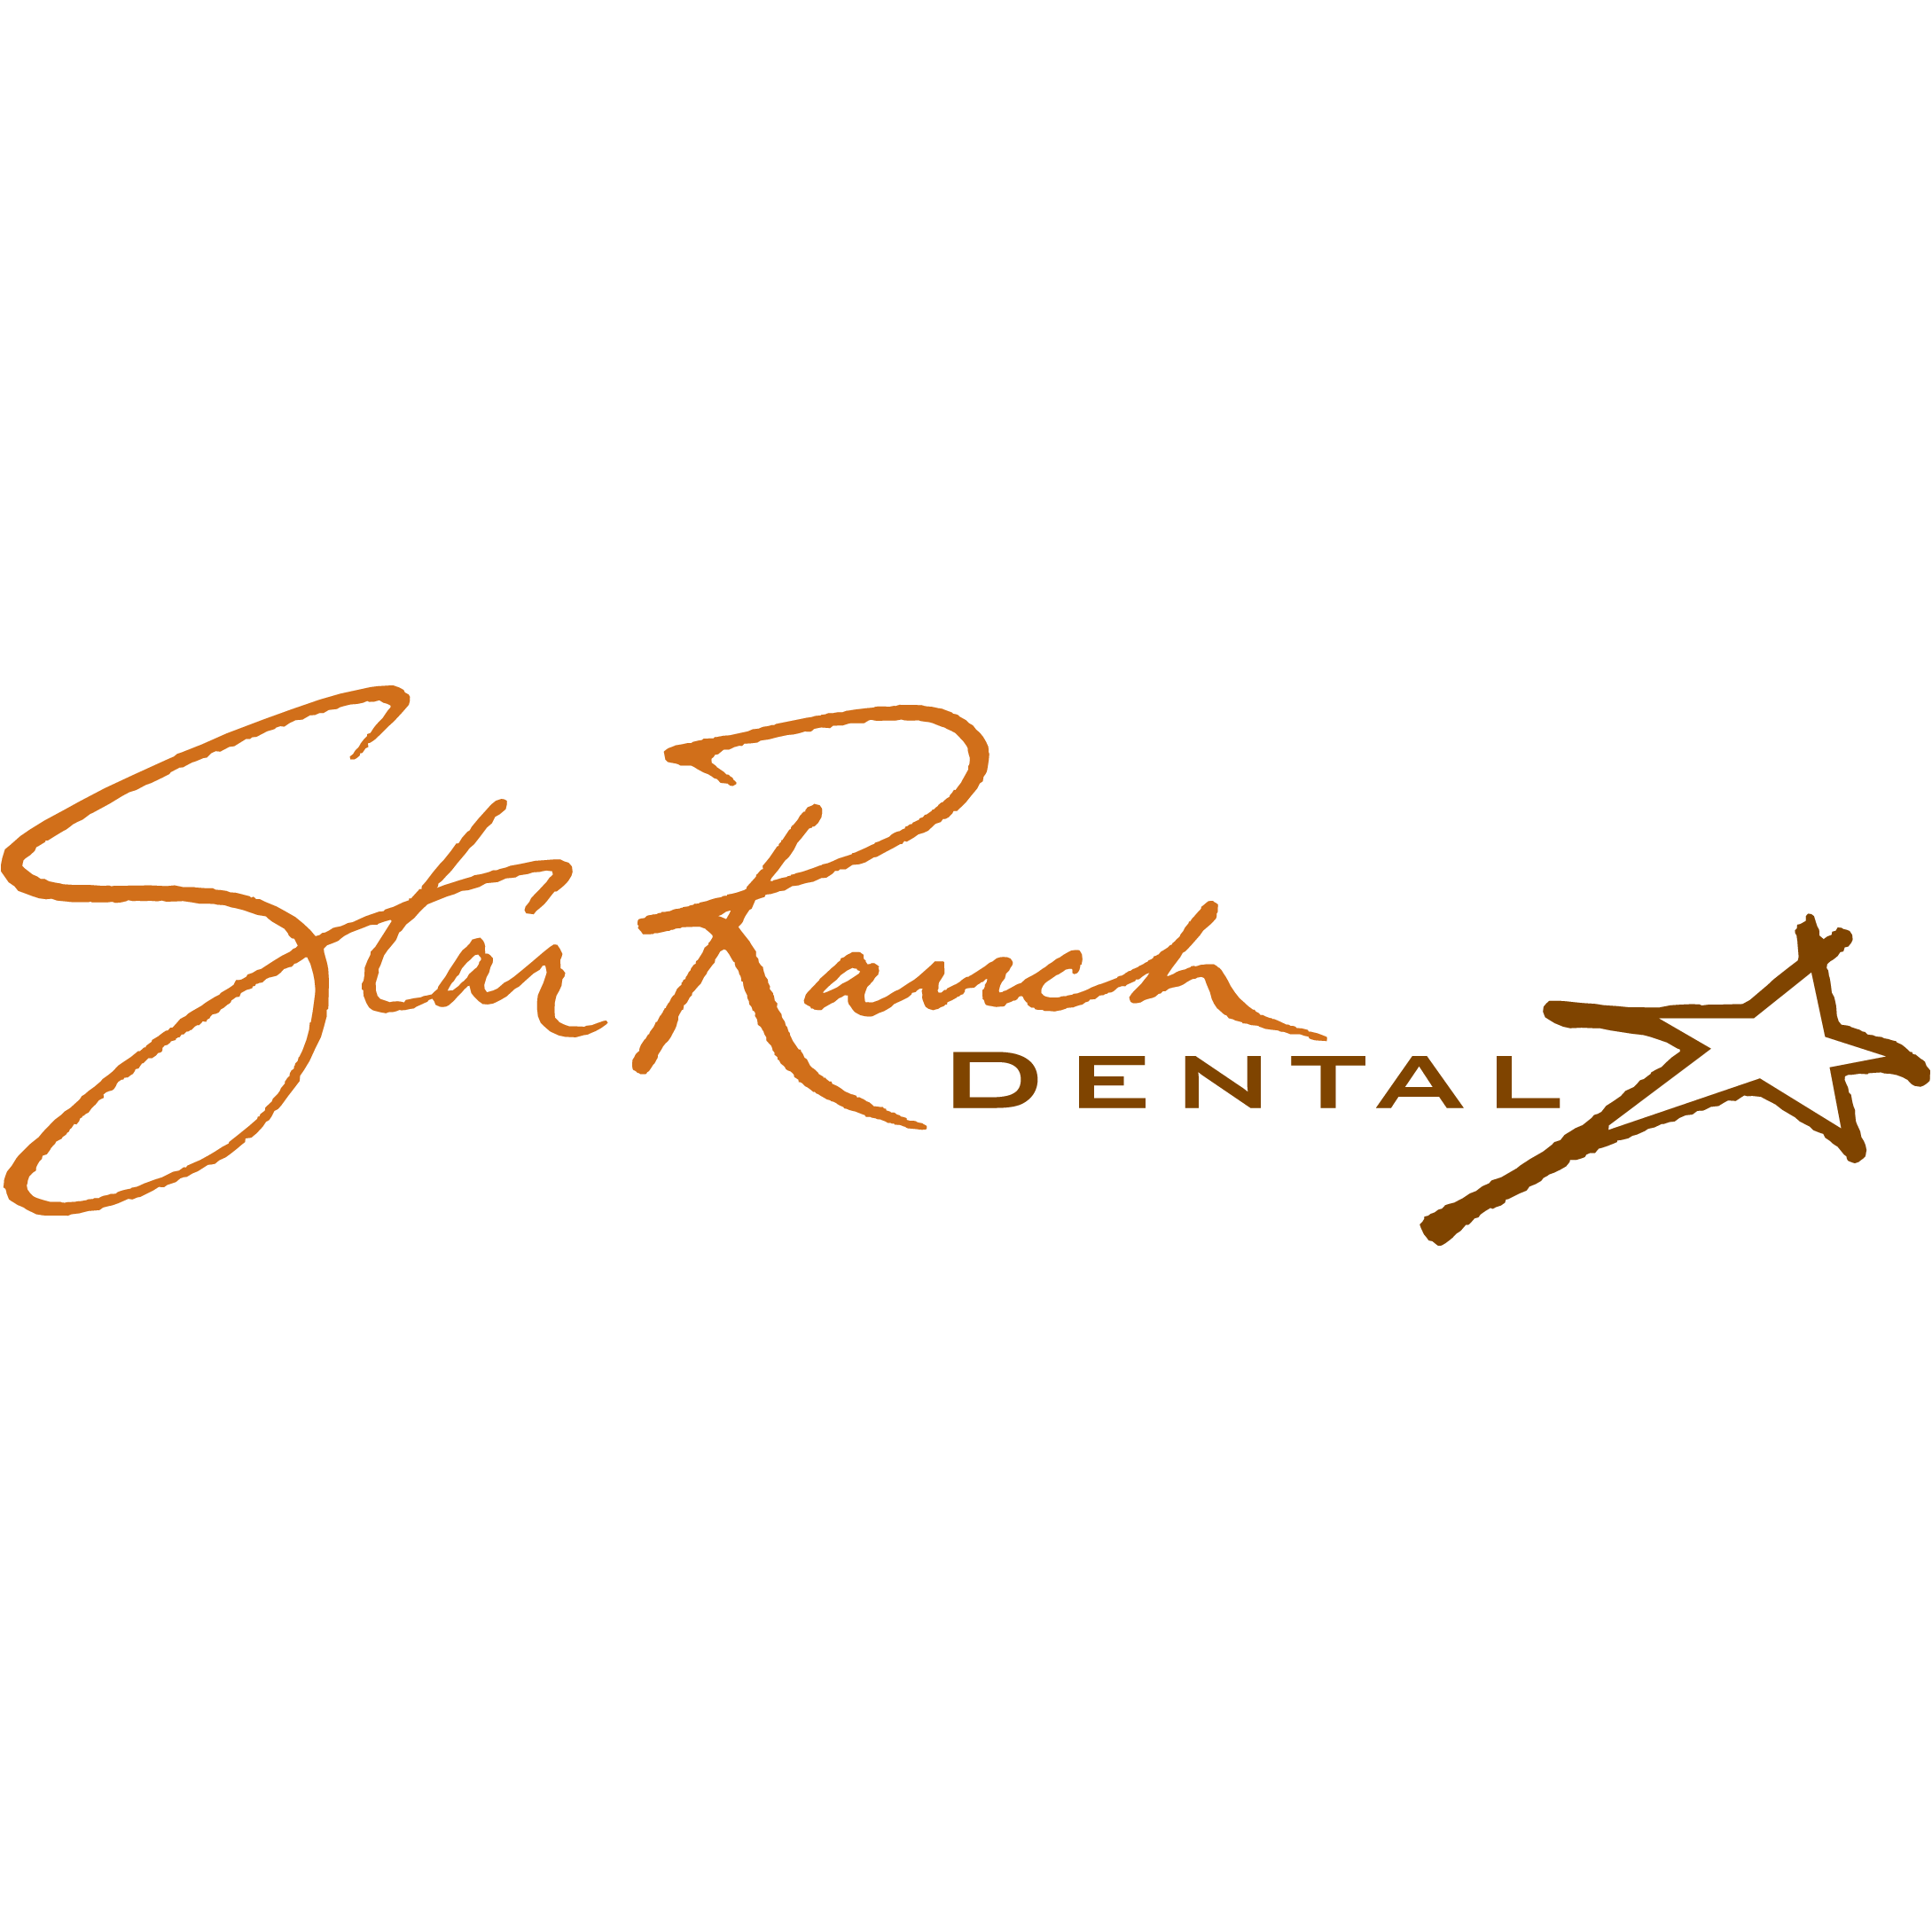 Star Ranch Dental